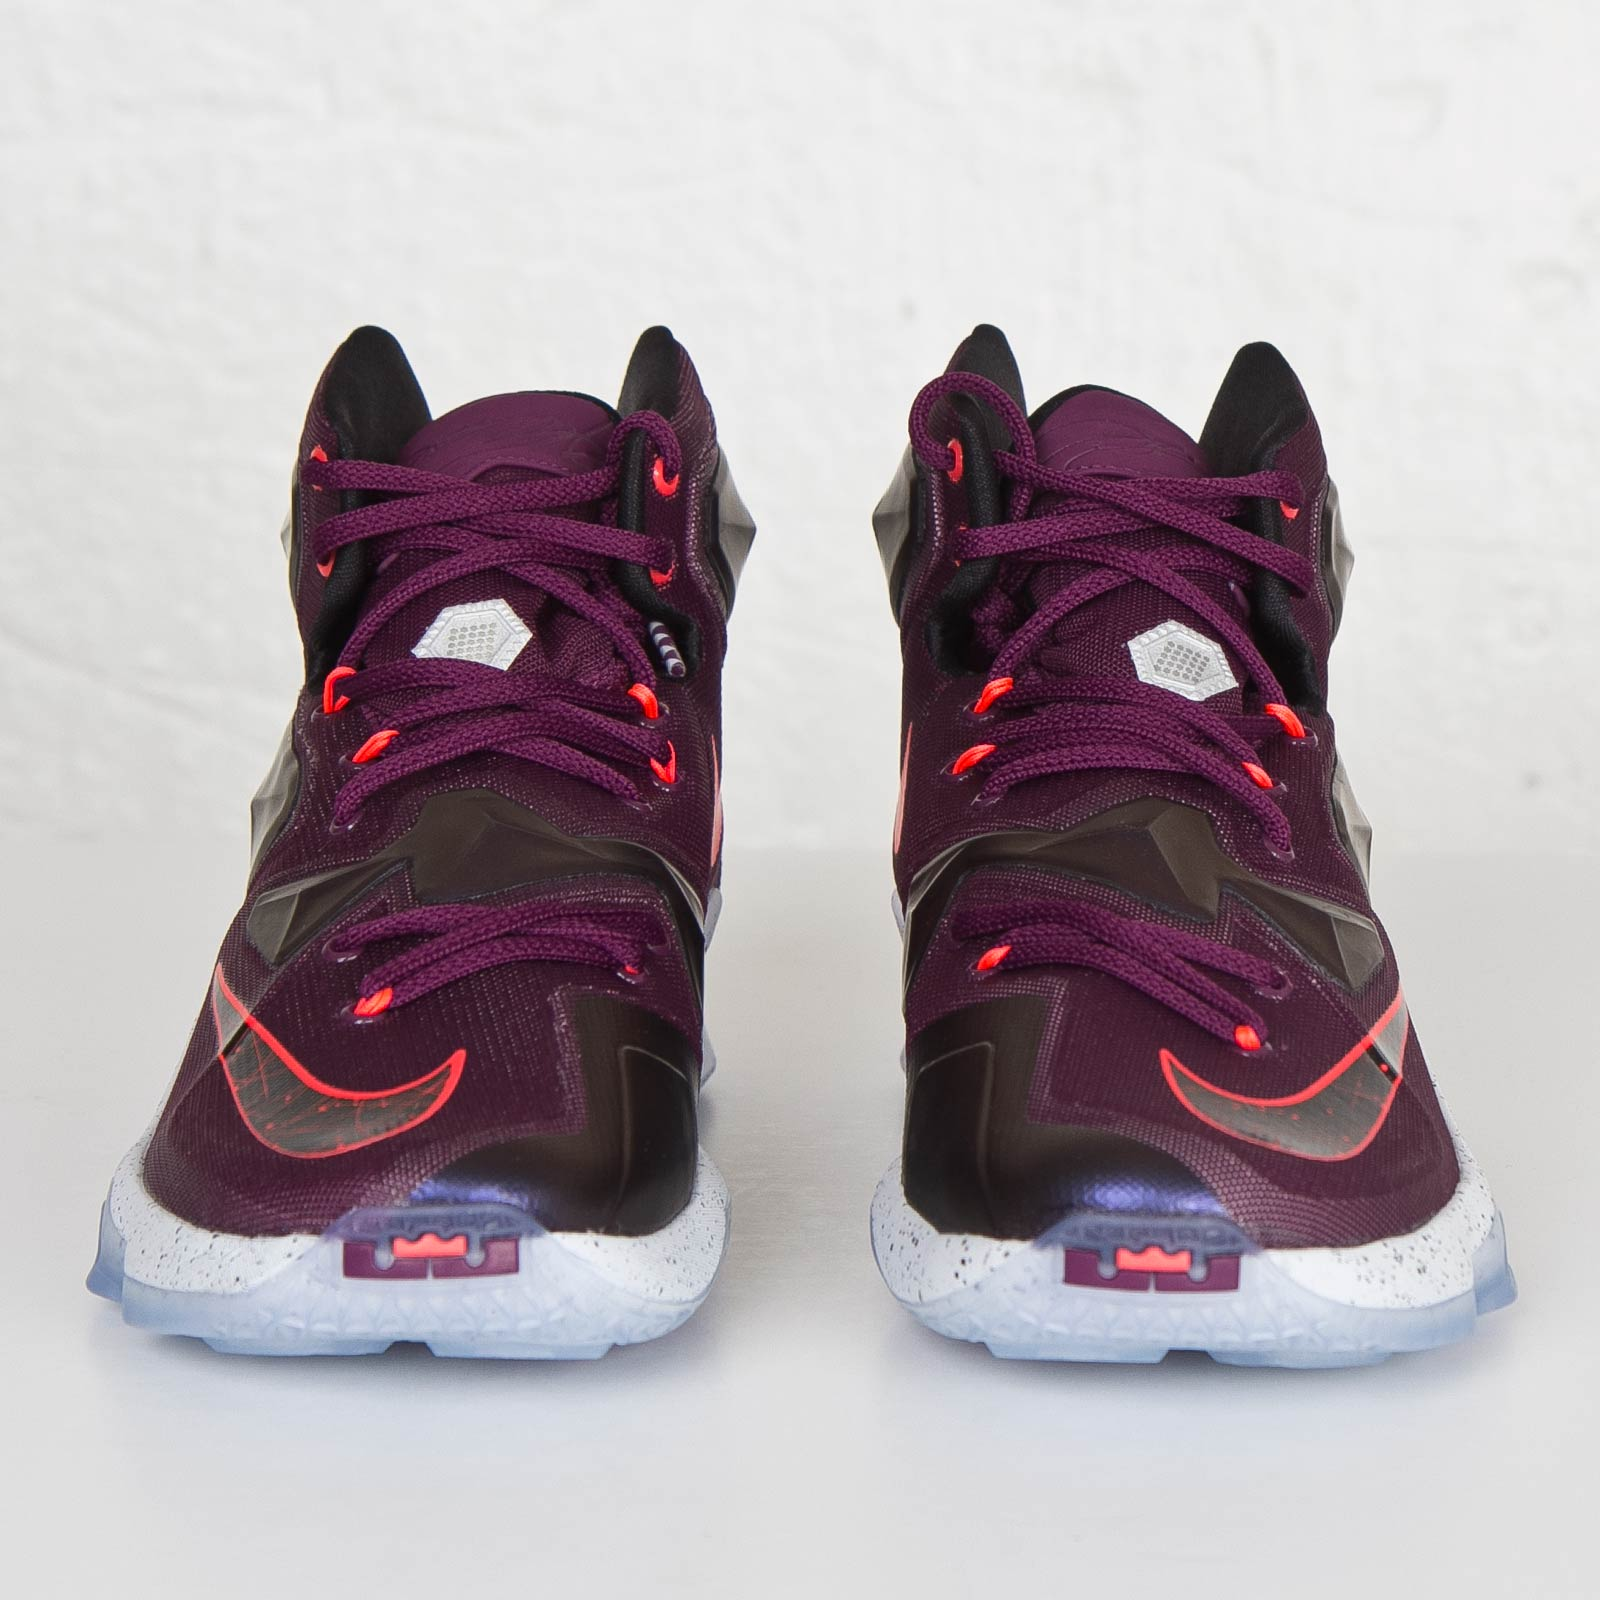 differently 51a9a 410aa amazon black and dark purple rainbow lebron 13 size 1 e1839 ae356  where  can i buy air 23 air jordan release dates foamposite air max and more abe3a